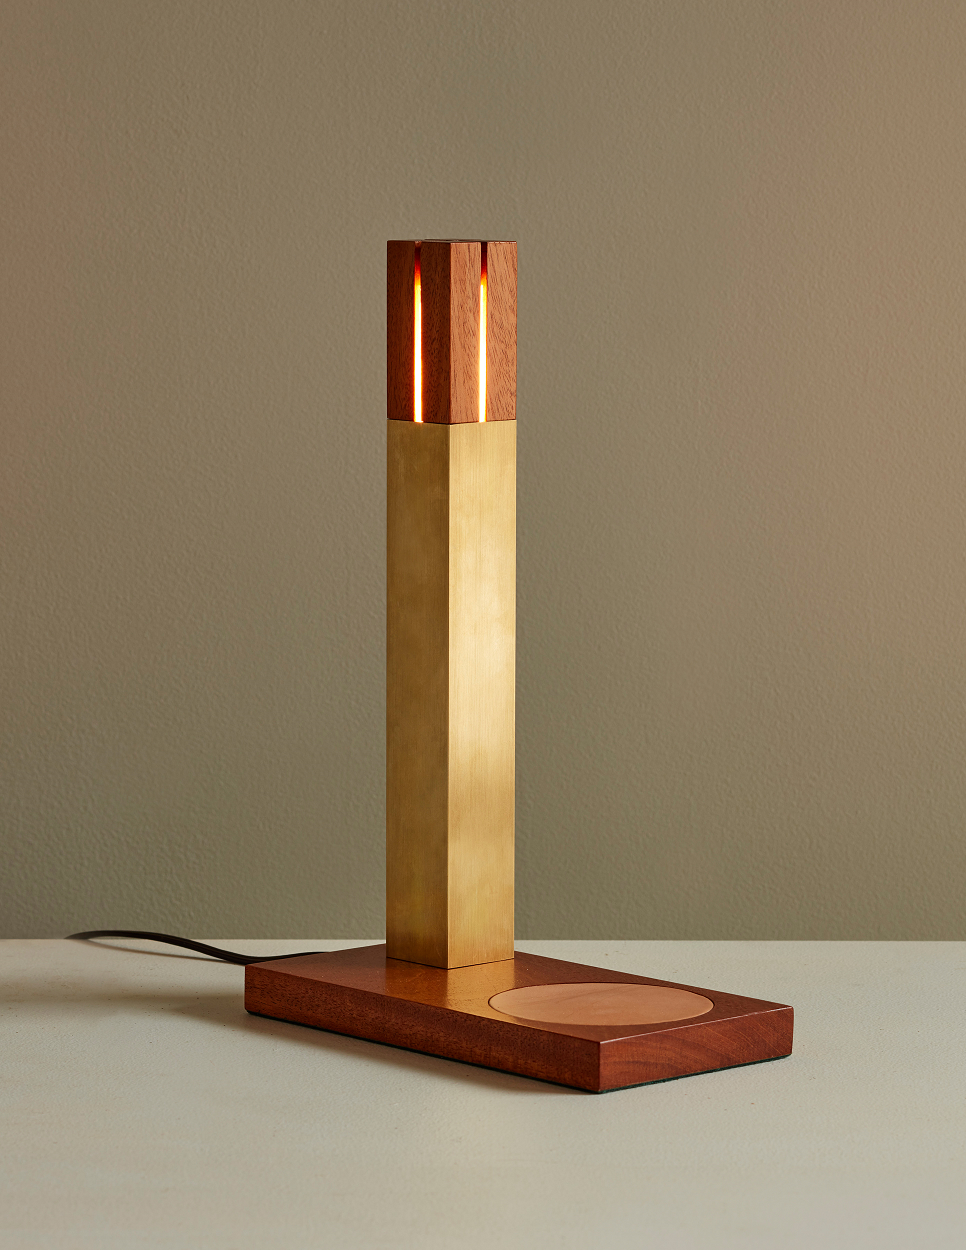 BOLAND+WOODWORKING_CEDAR+TABLE+LAMP_019+FINAL+Credit+Jason+Varney+resize.png